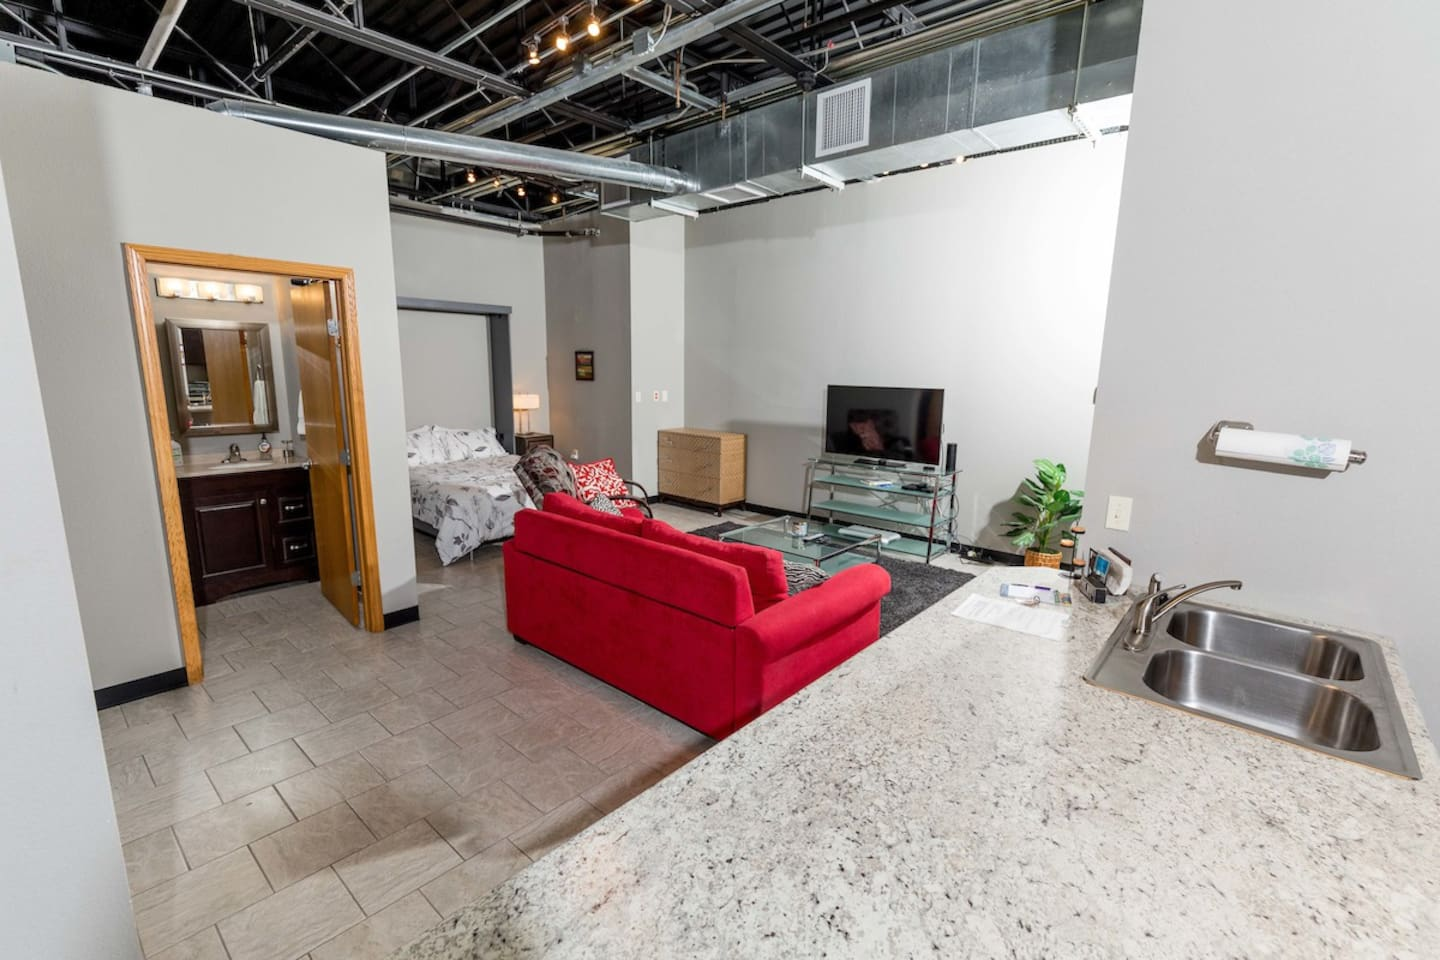 Studio apartment sleeps up to 4 in an industrial style office building.